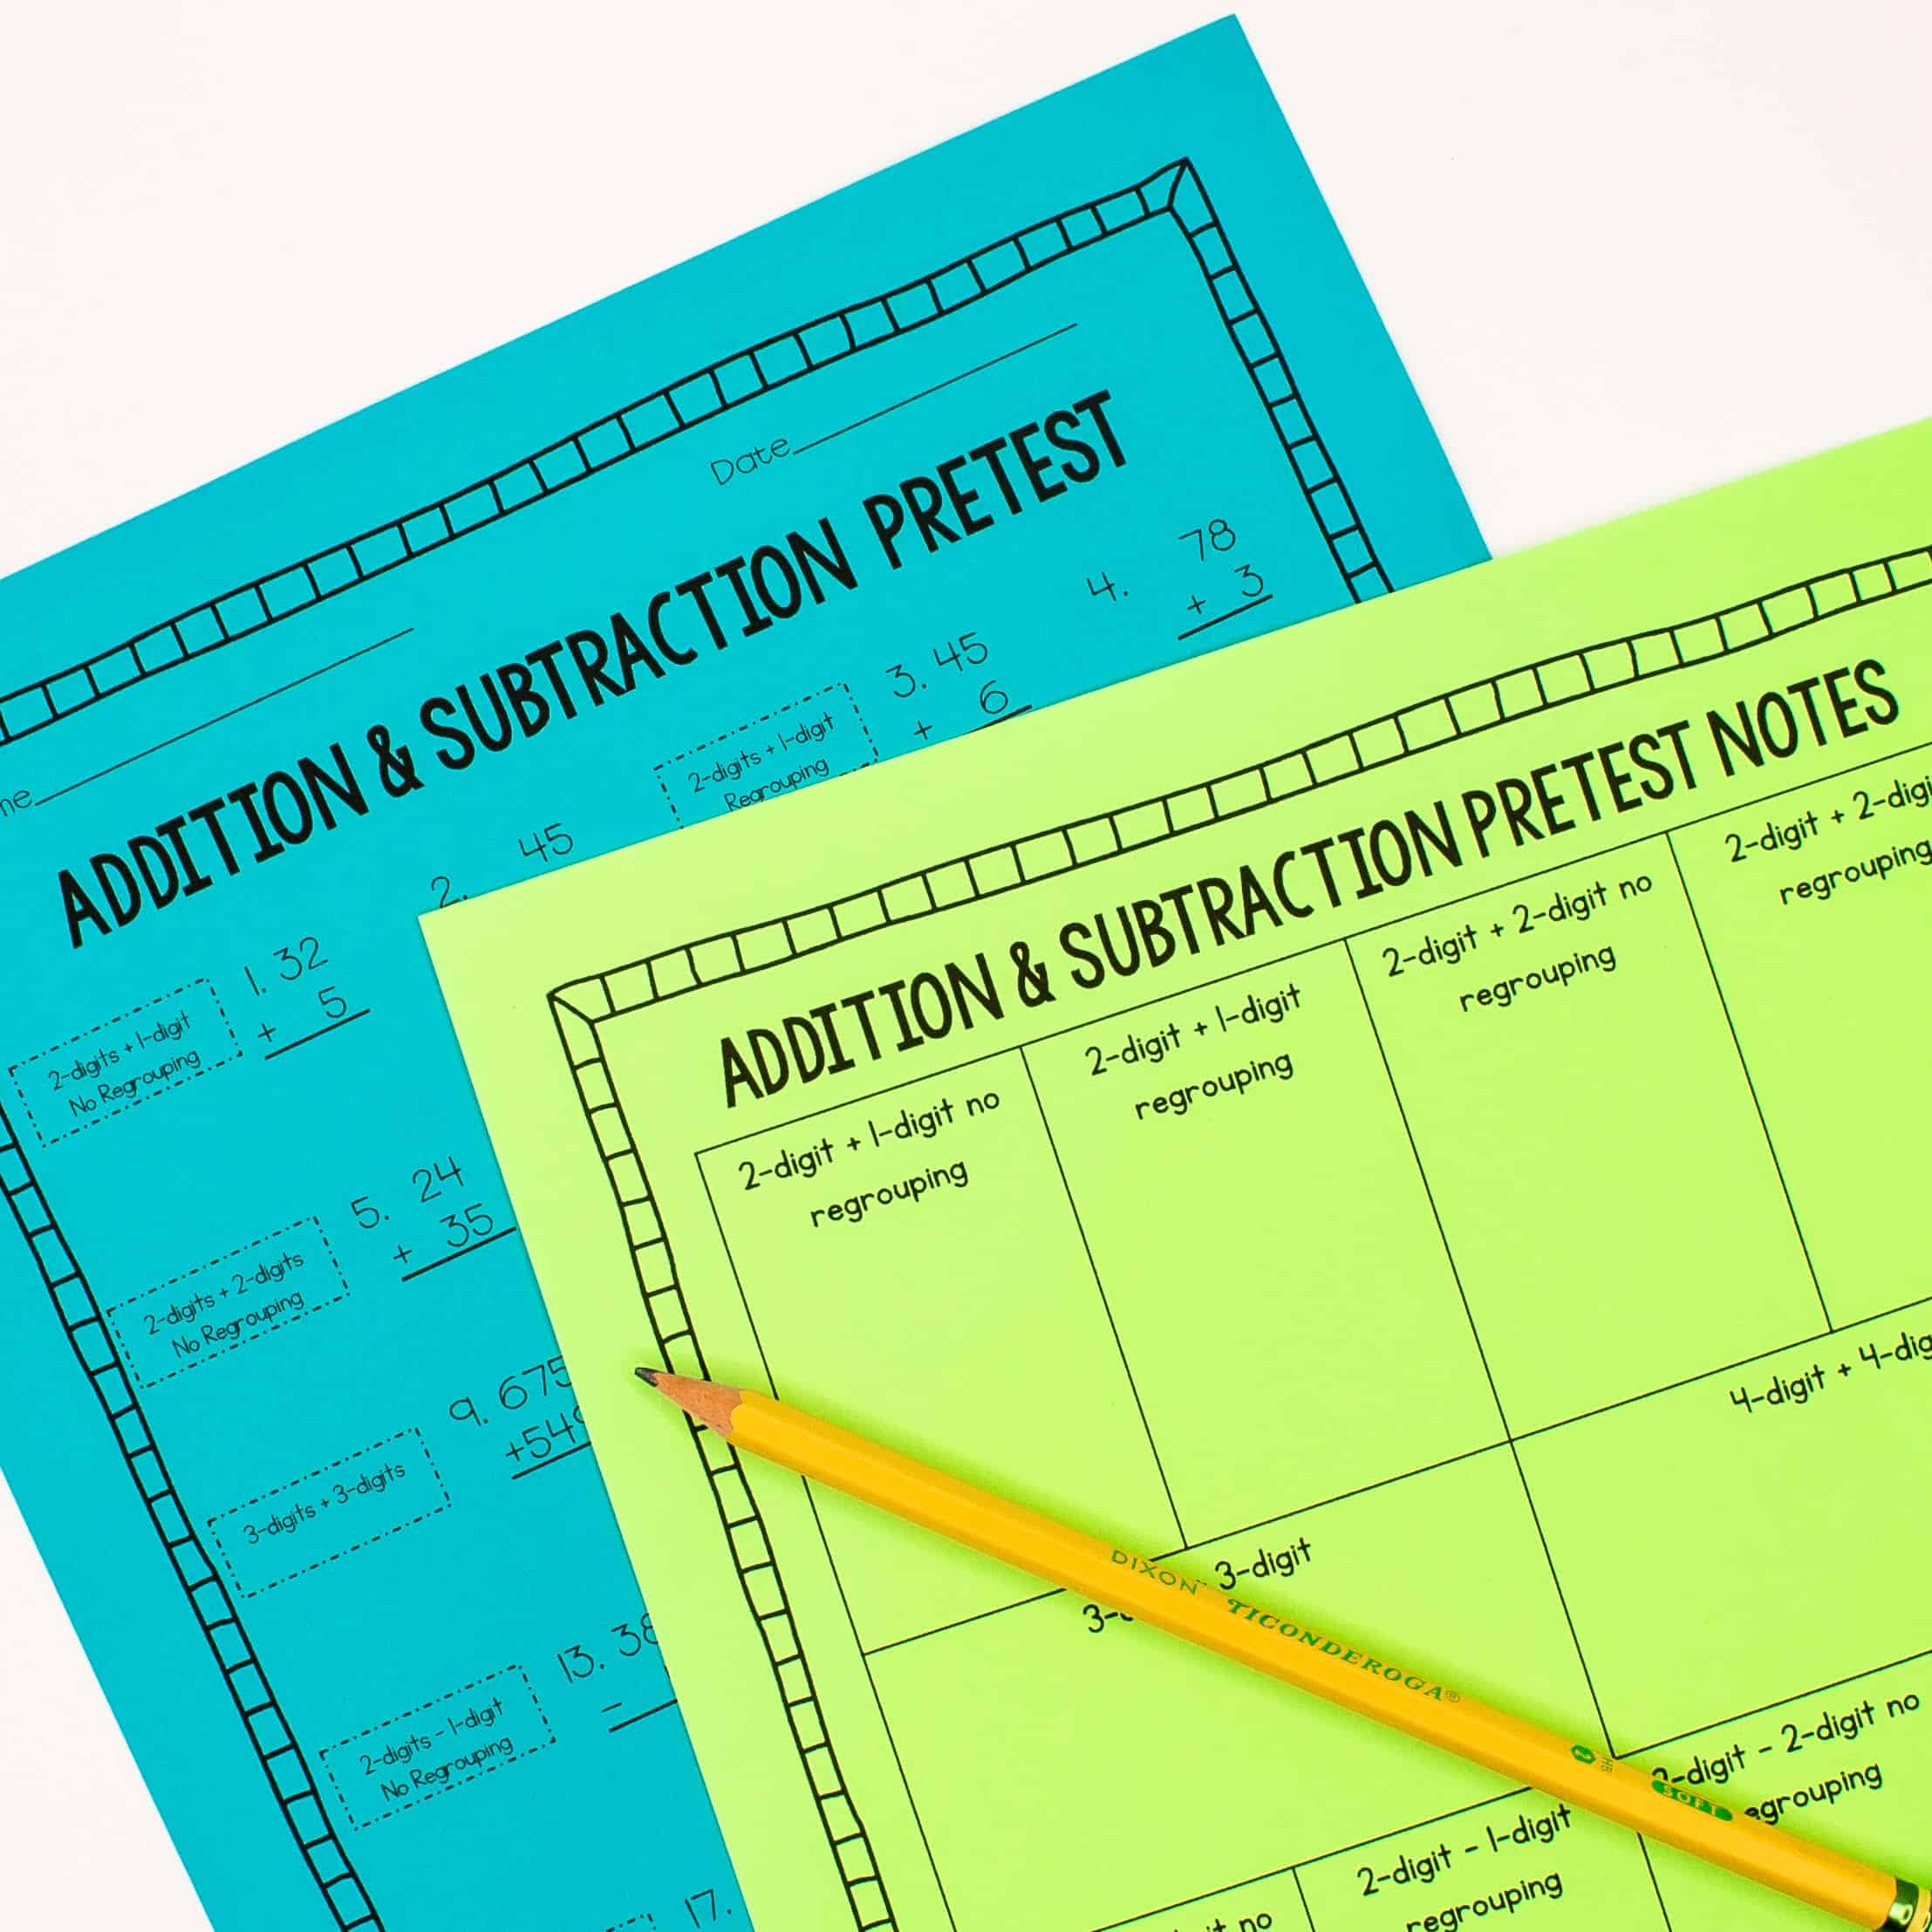 Addition and subtraction pretest worksheets on neon blue and neon green paper